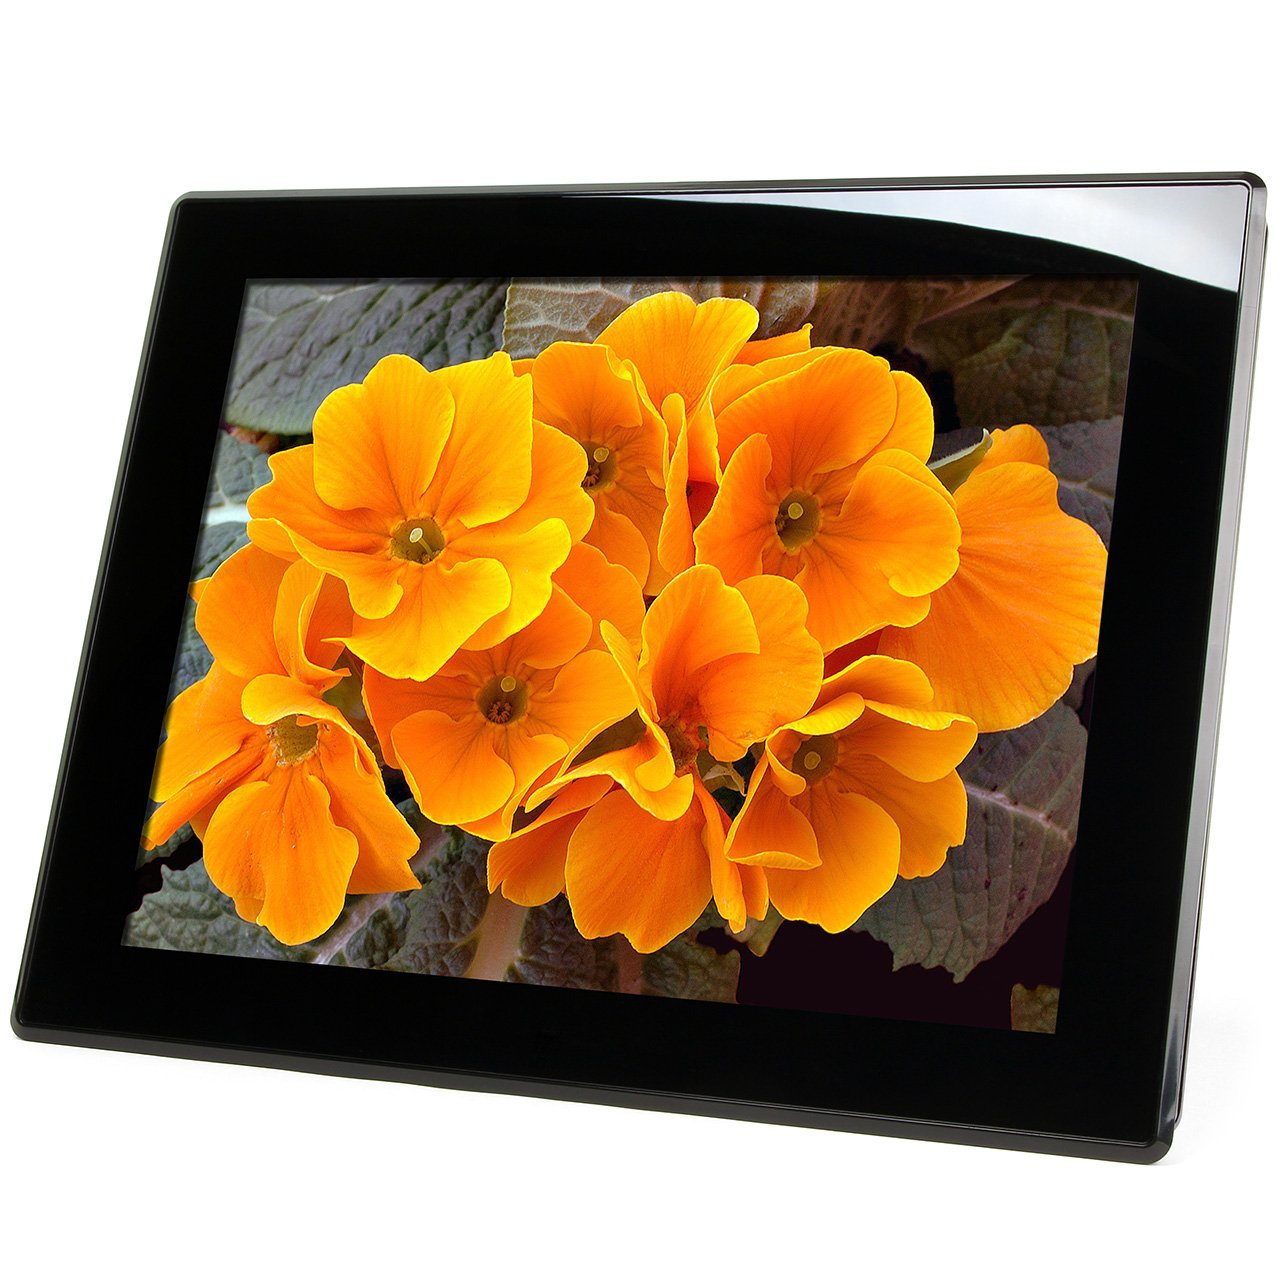 Micca 15-Inch 1024x768 Digital Photo Frame w/Auto On/Off Timer - Tanga